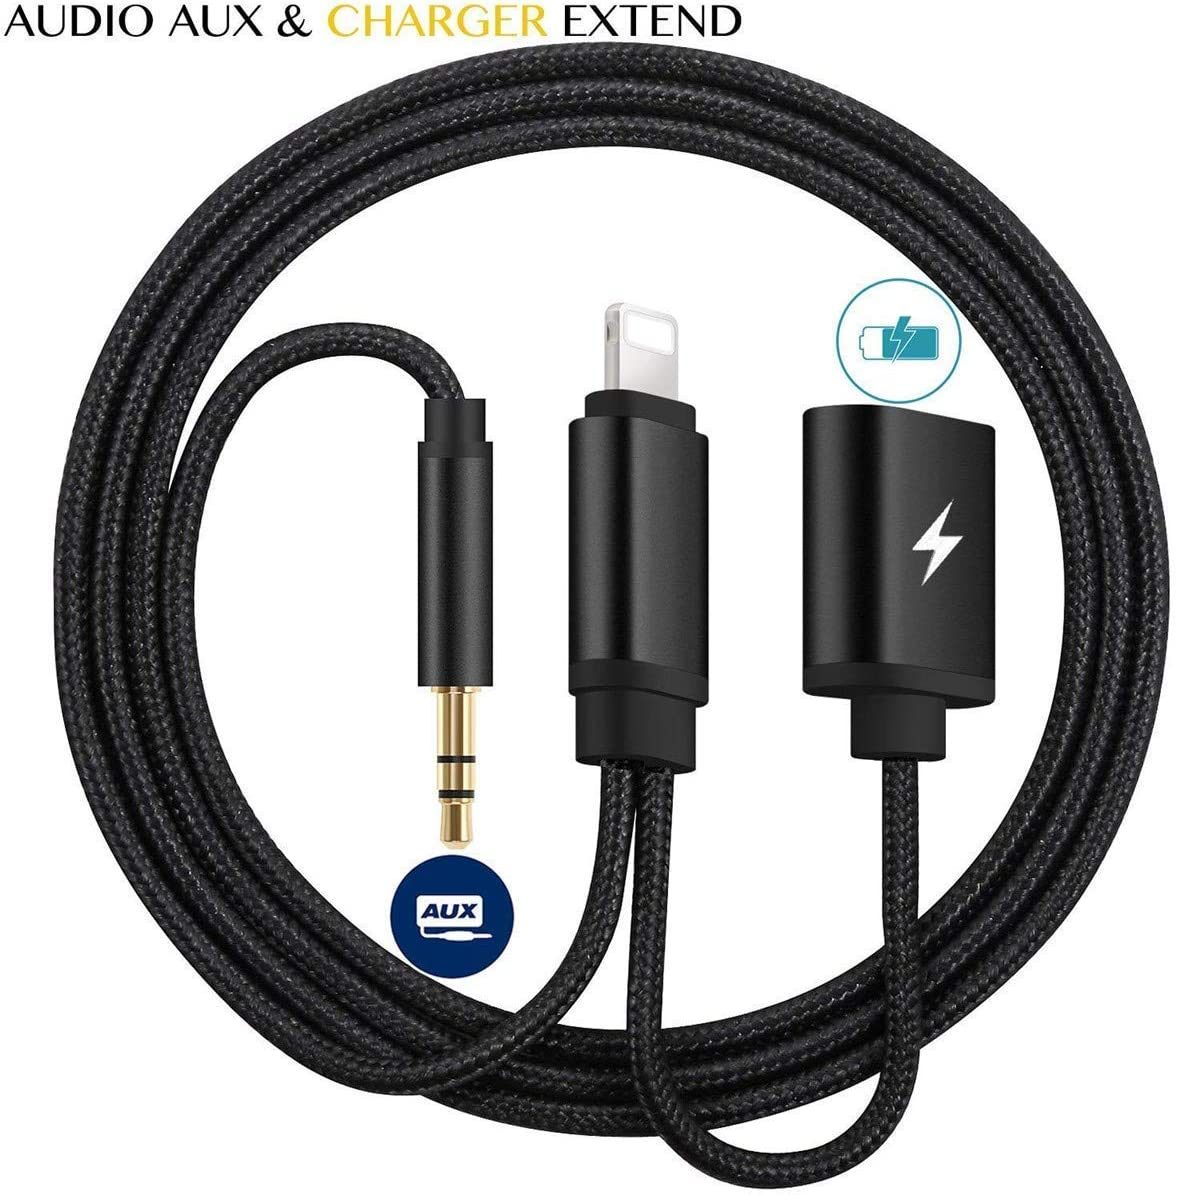 Aux Cord for Car Apple MFi Certified Compatible for iPhone 11 XS XR X 7 7P 8 8P Lightning to 3.5mm Audio Auxiliary Cable Aux Cable Charger Splitter